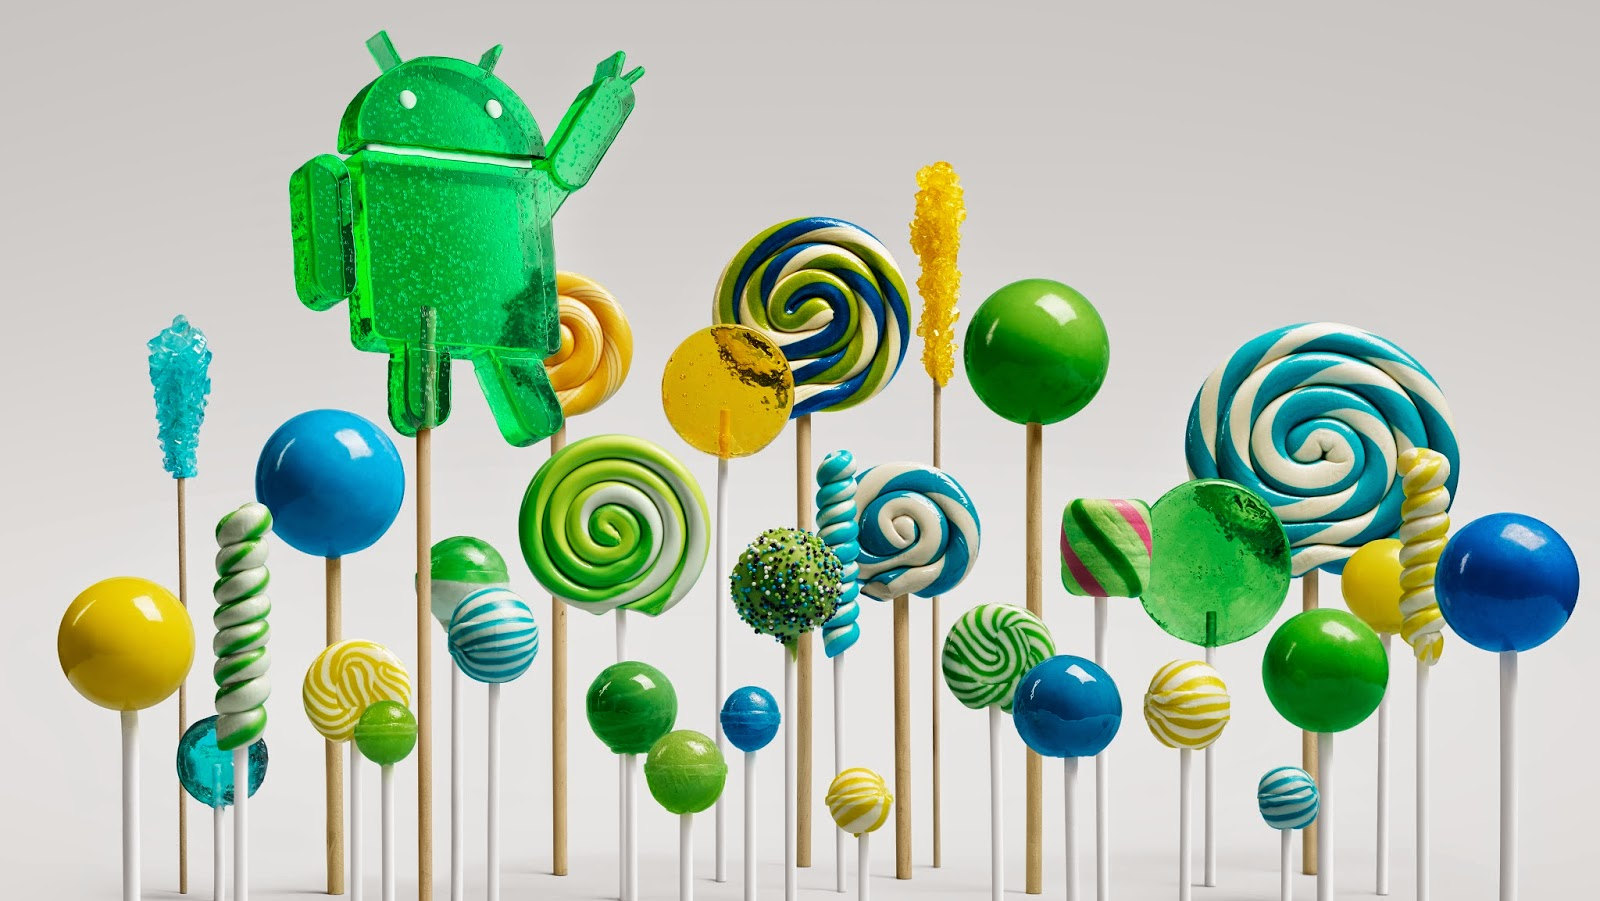 Android Lollipop OS update